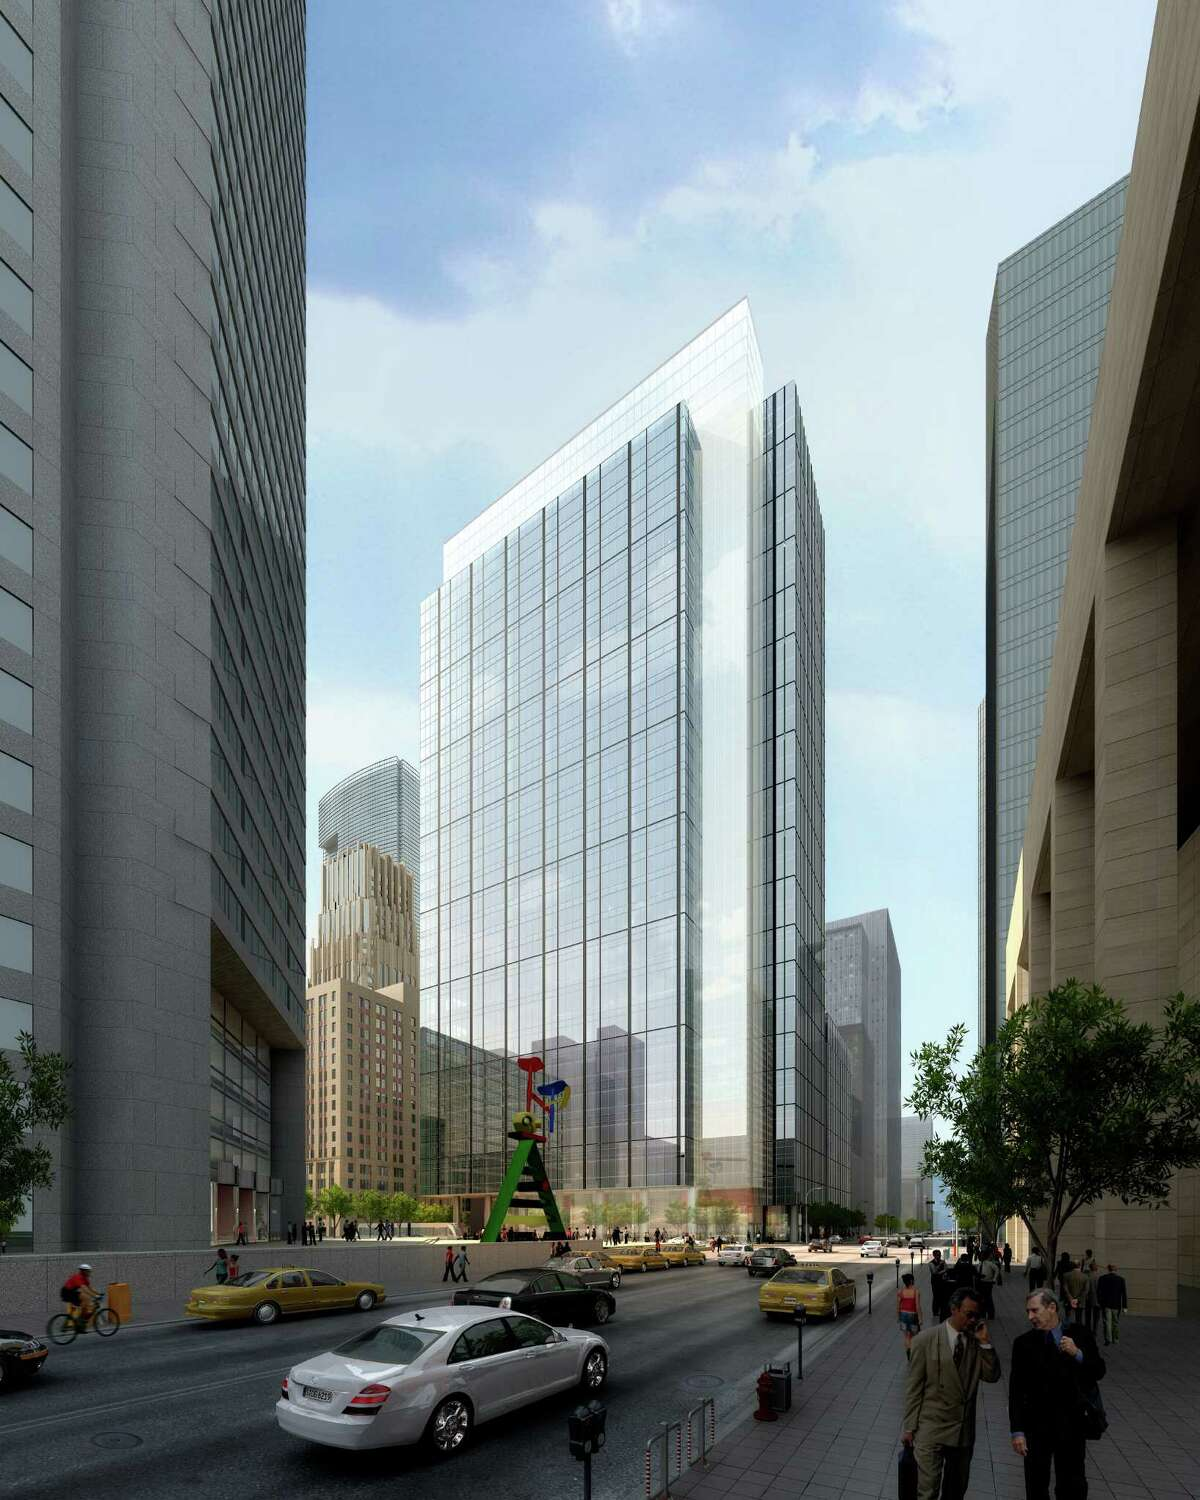 Skanska USA Commercial Development plans to put up a 35-story office tower on the Houston Club site. Bank of America now leases 423,614 square feet in the Bank of America Center.